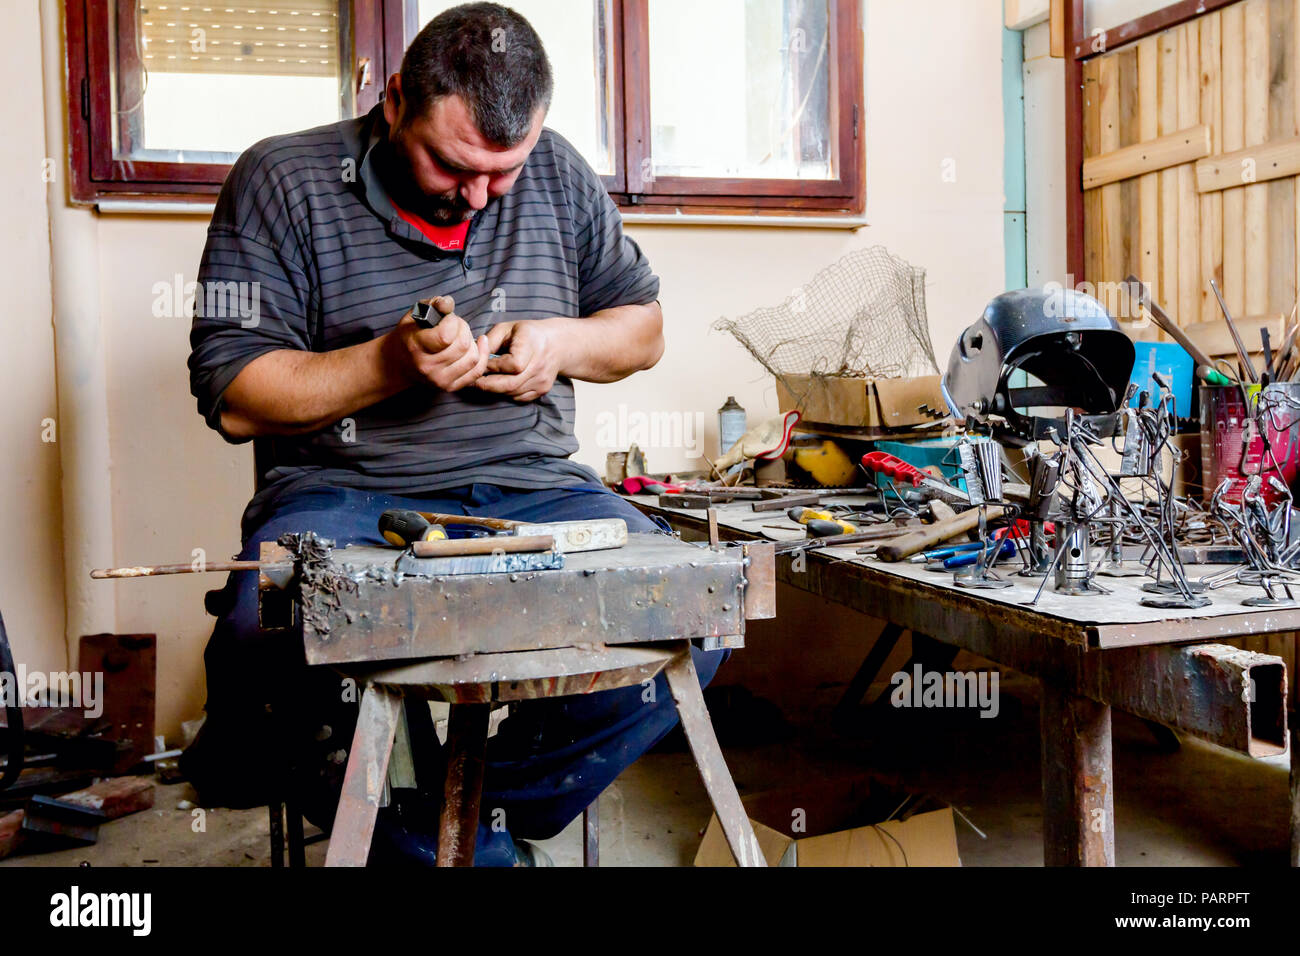 Wire Line Tools Stock Photos Images Alamy Harness Assembly Workbench Artist Is Processing Metal With Special In His Hands To Curve Right Shape